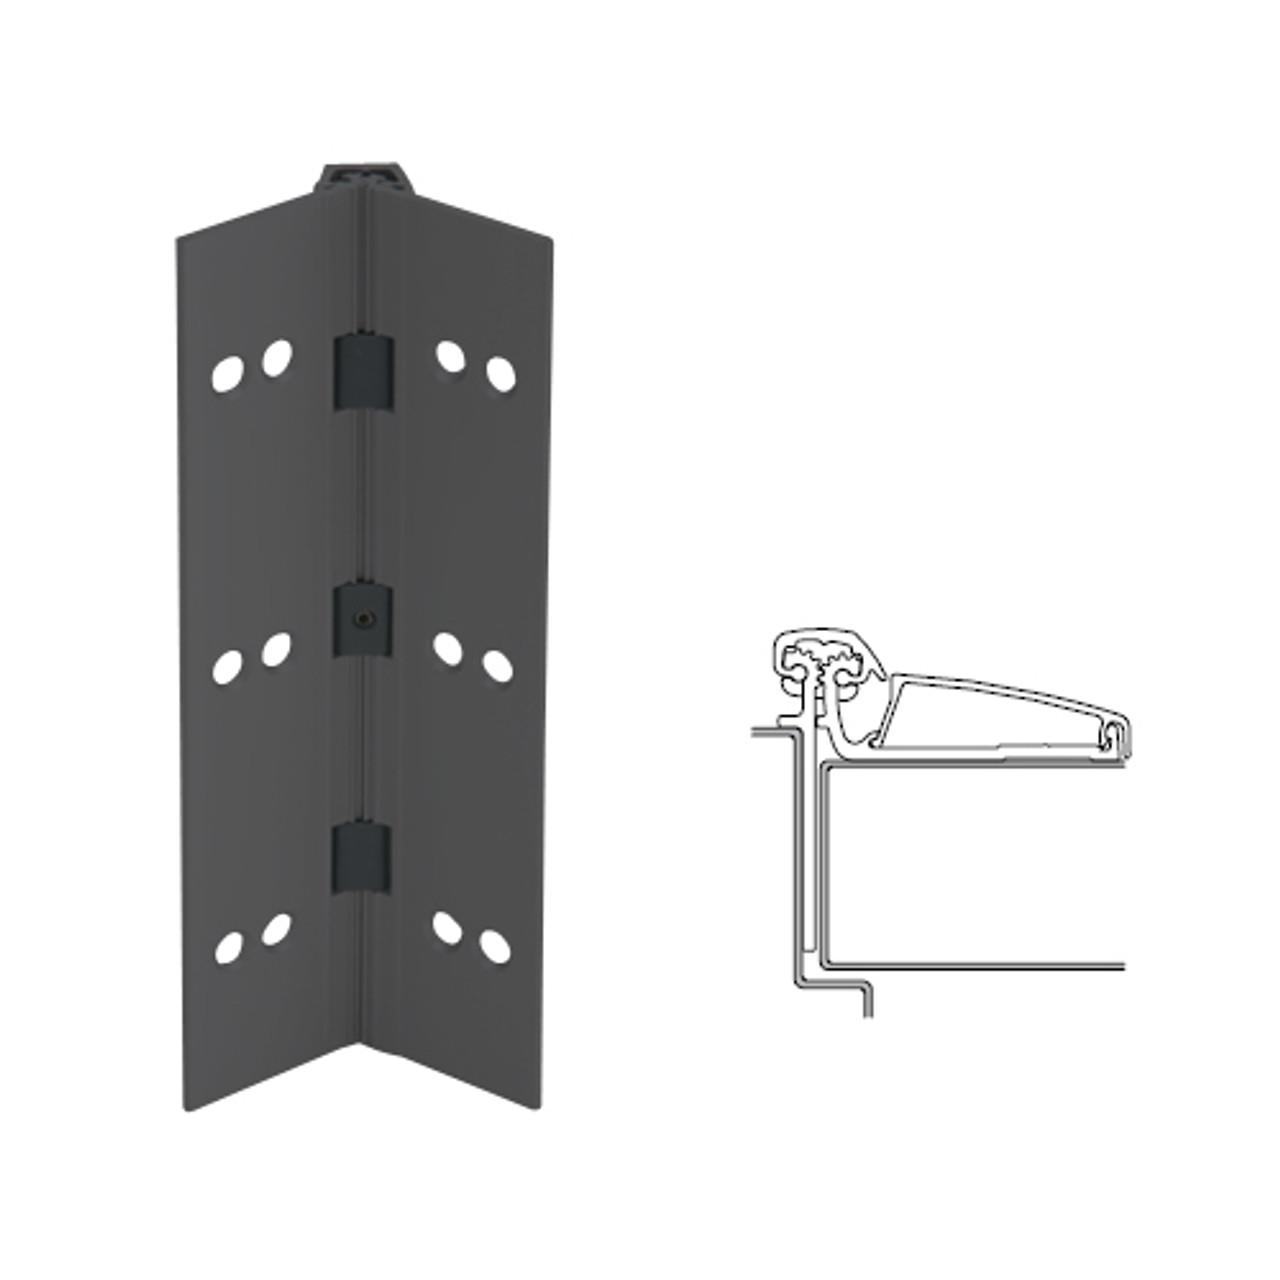 046XY-315AN-95-SECWDWD IVES Adjustable Half Surface Continuous Geared Hinges with Security Screws - Hex Pin Drive in Anodized Black